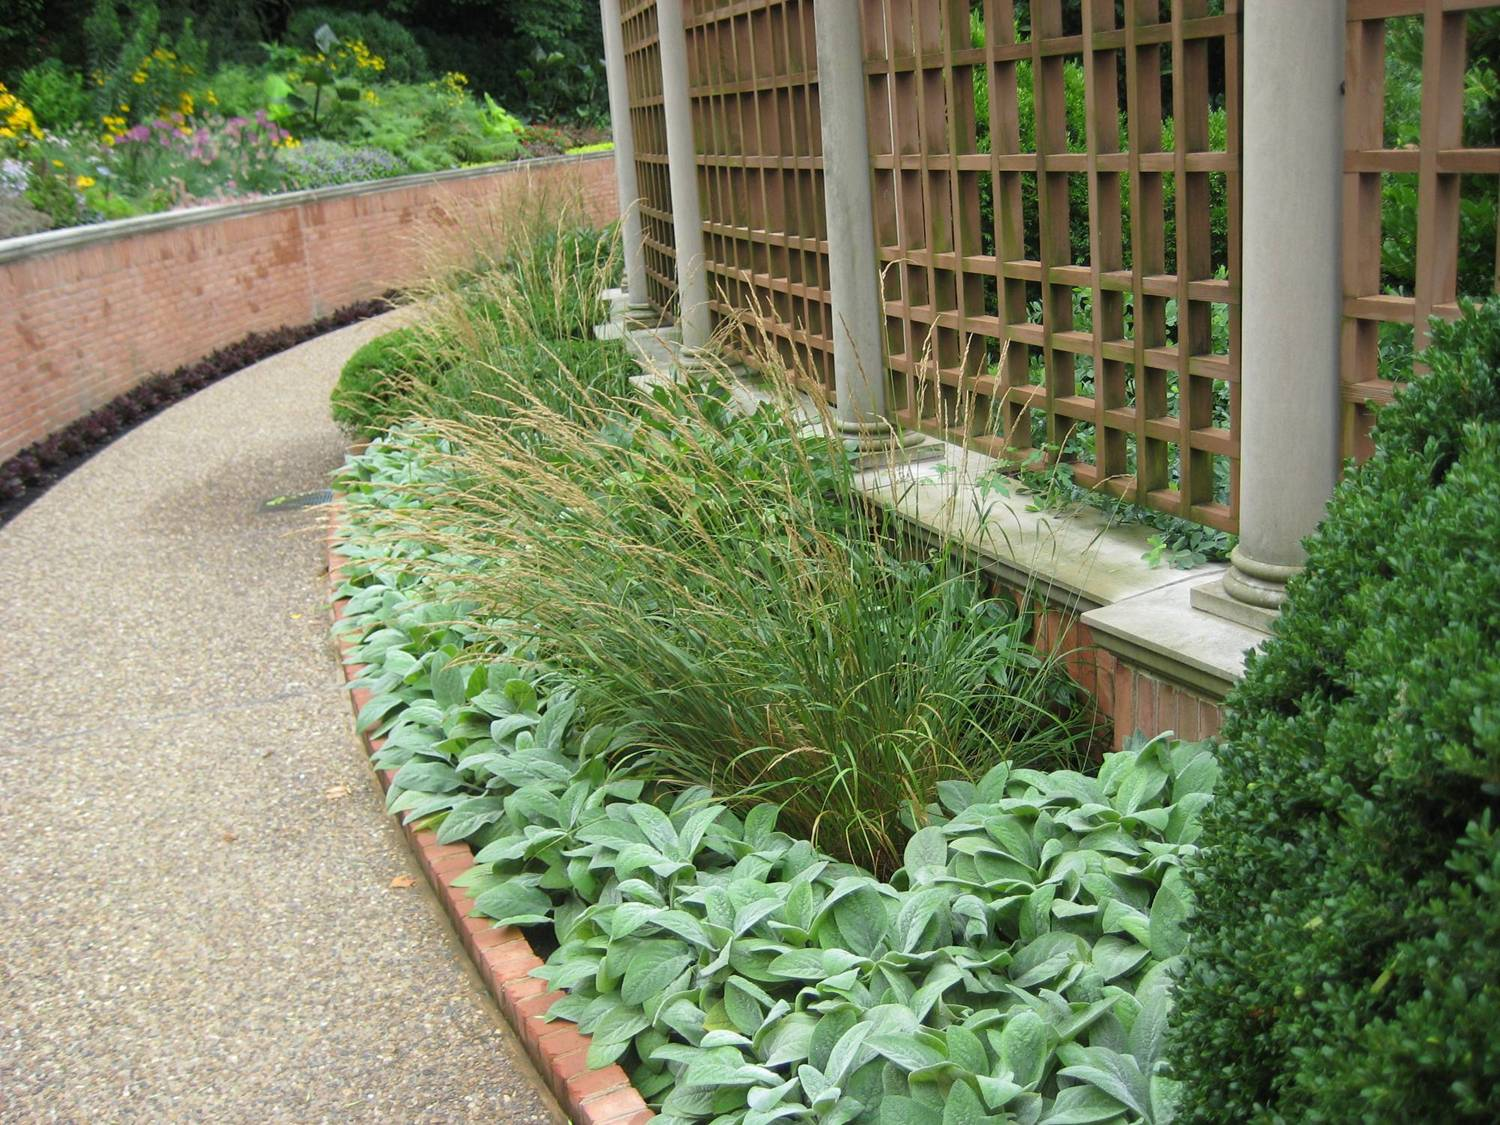 basic design principles and styles for garden beds - Garden Design Long Narrow Plot